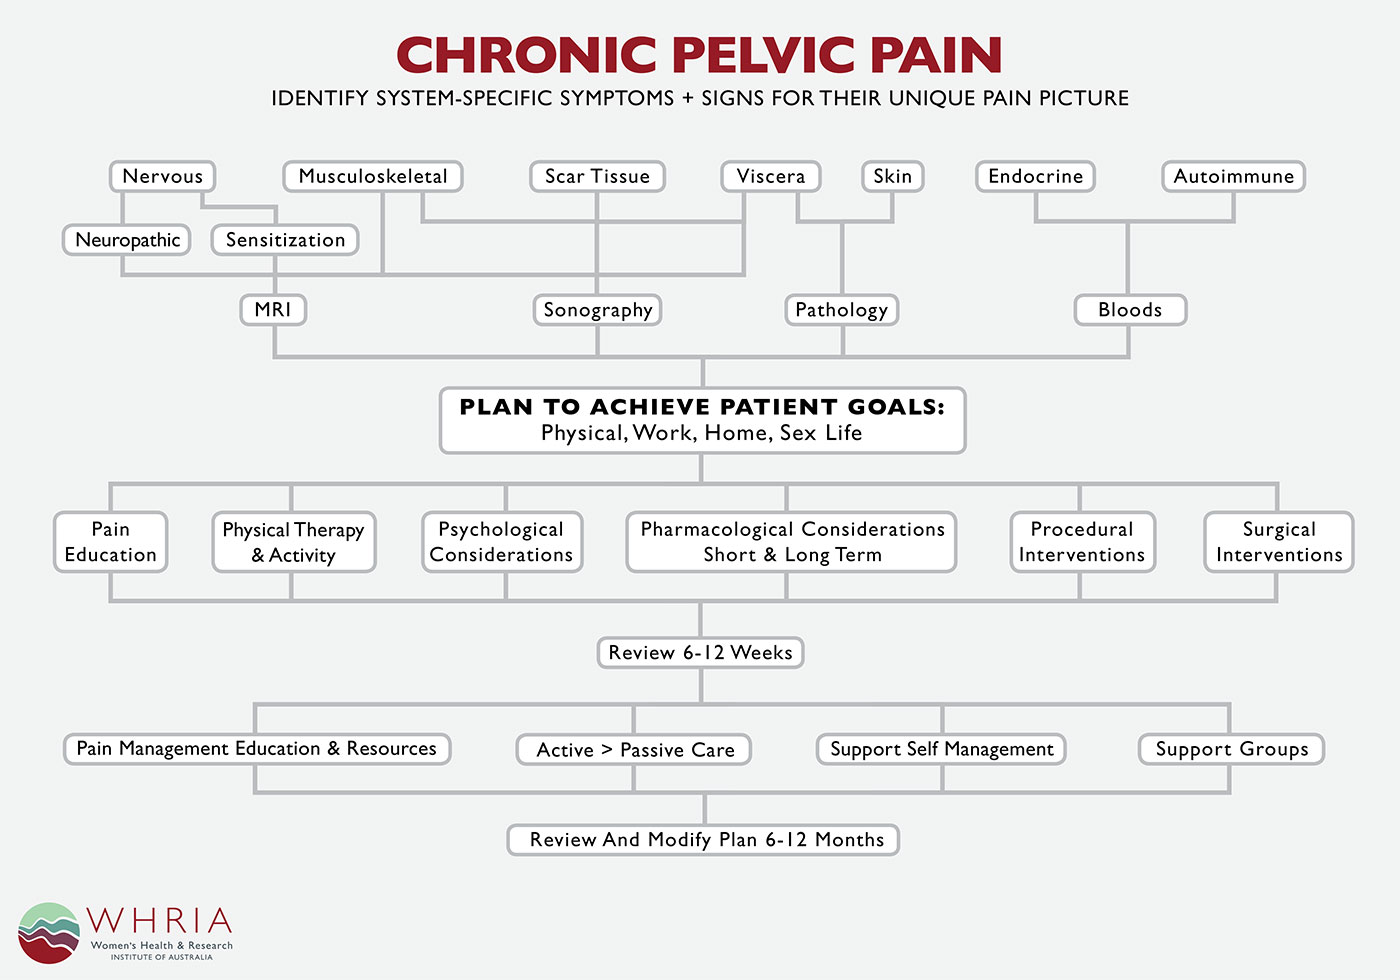 Pelvic Pain After Sexually Active